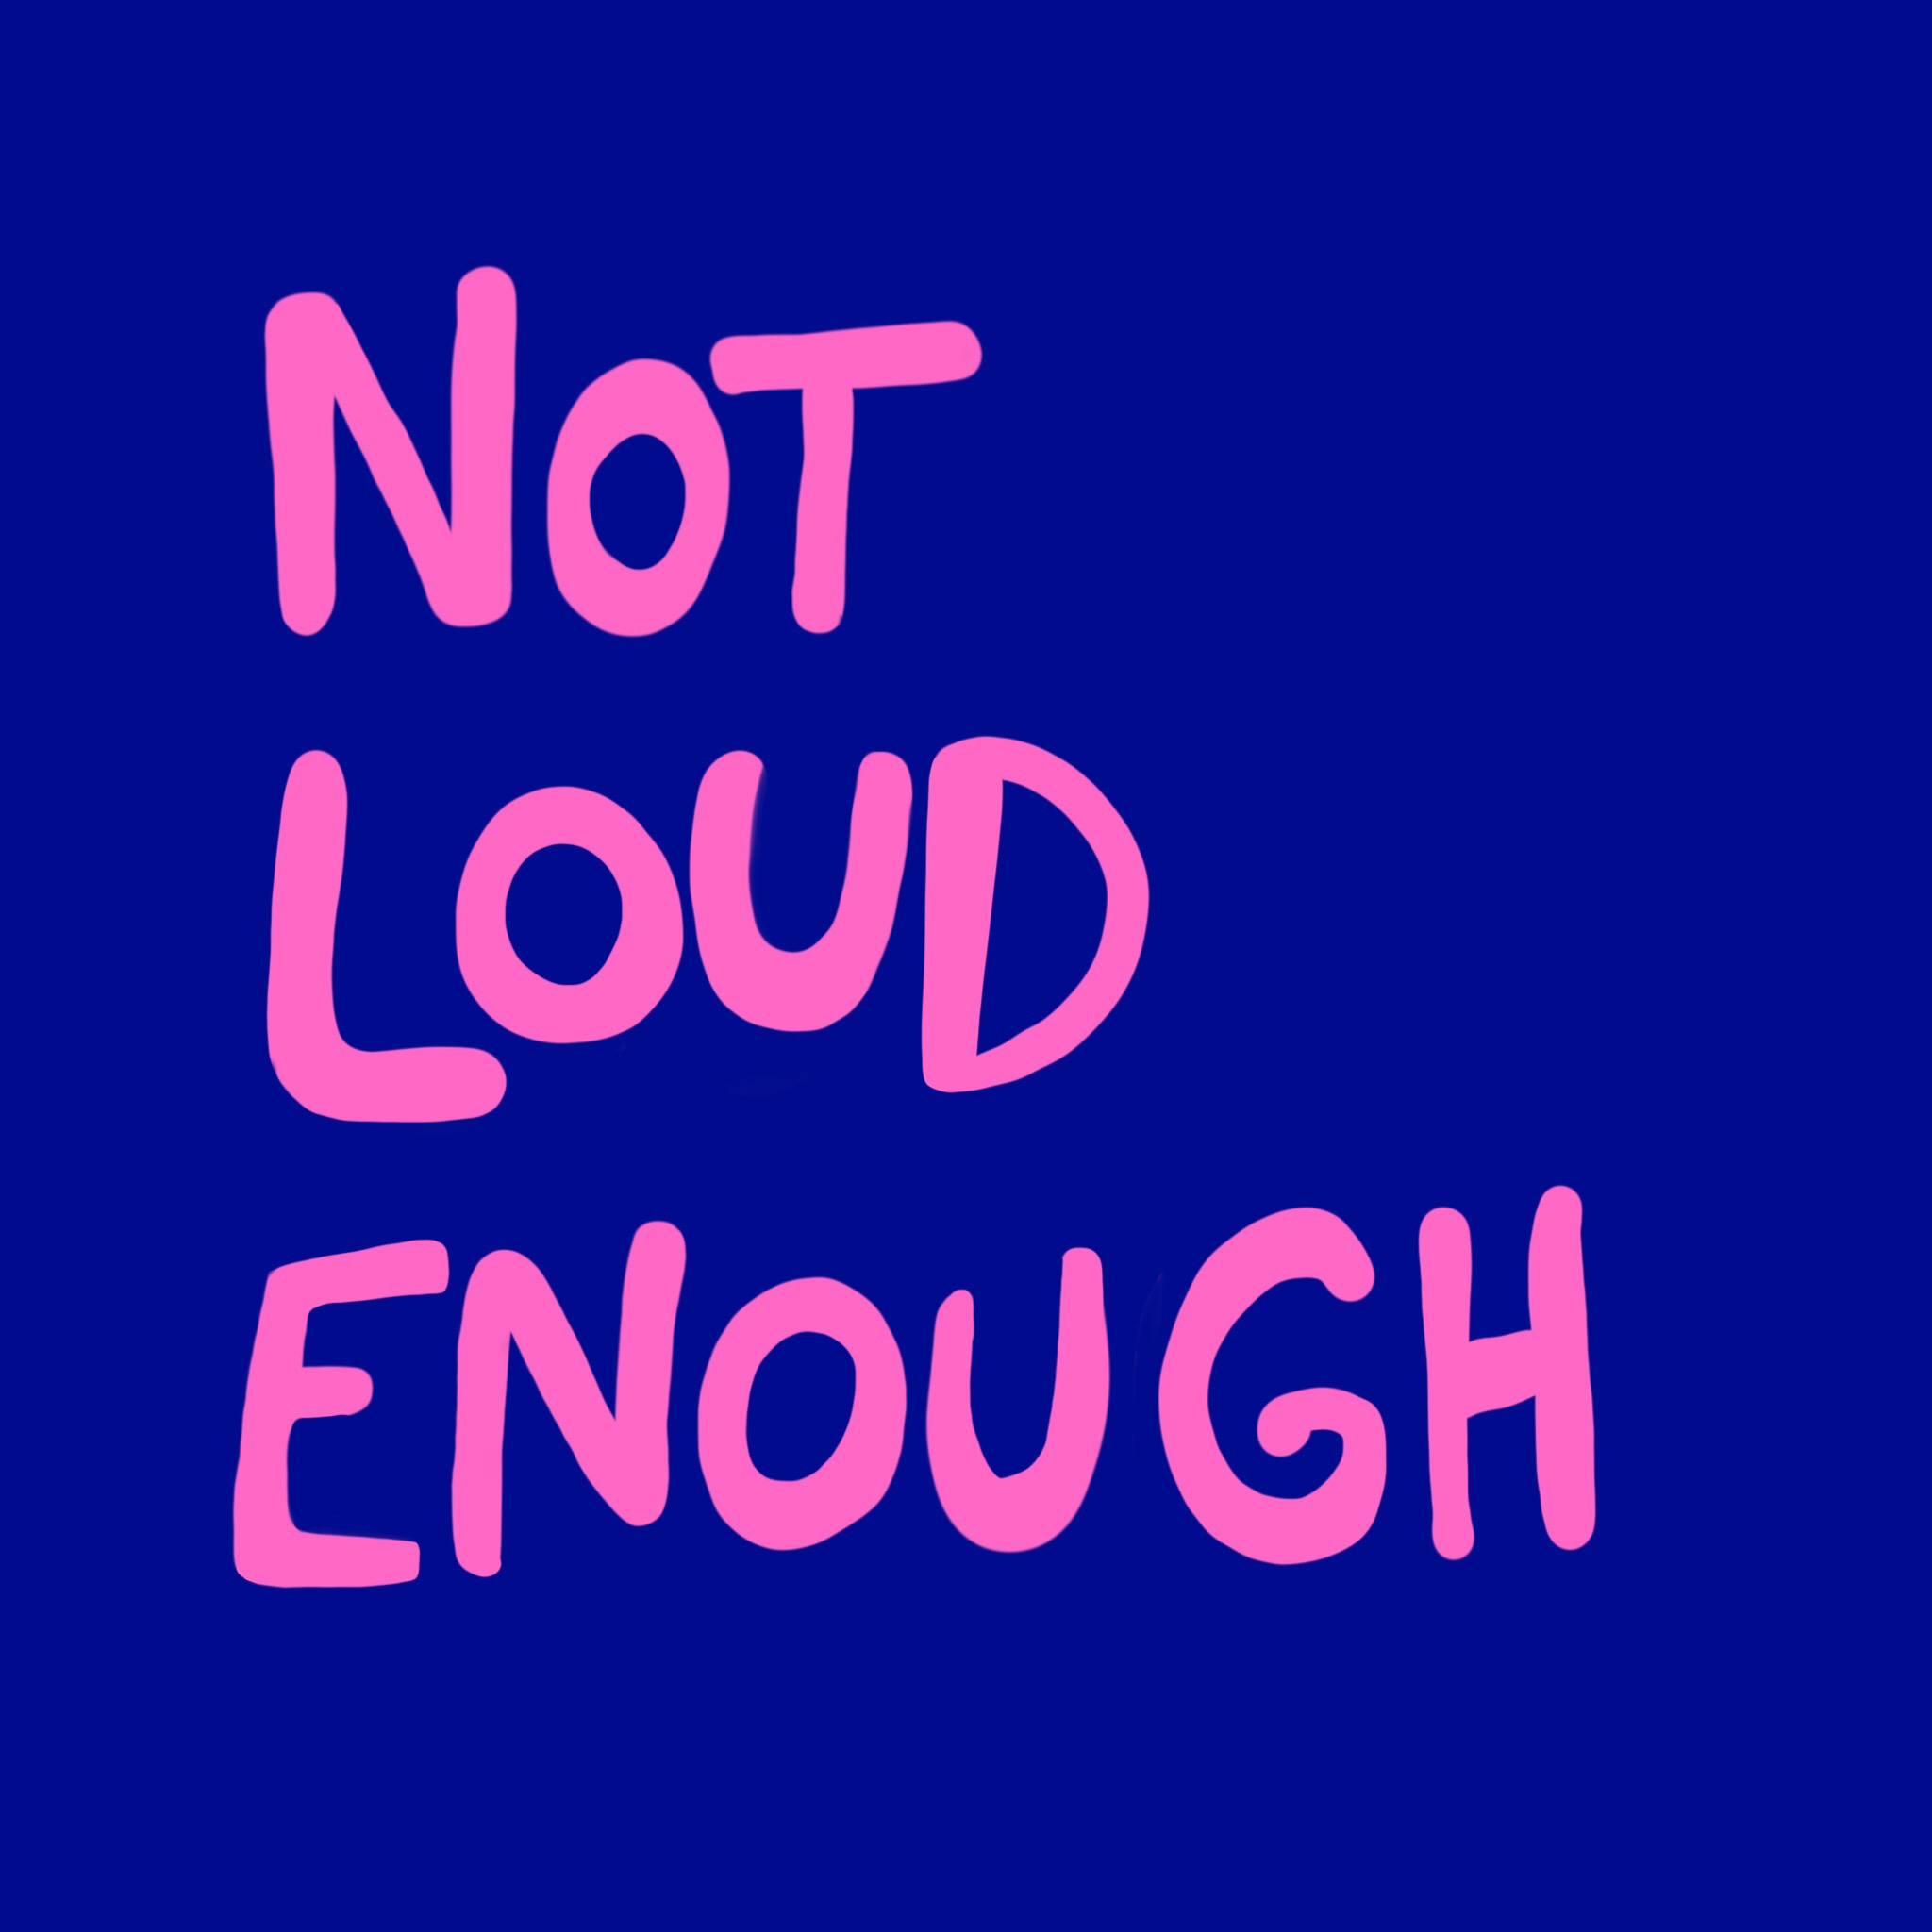 Not_loud_enough.jpg